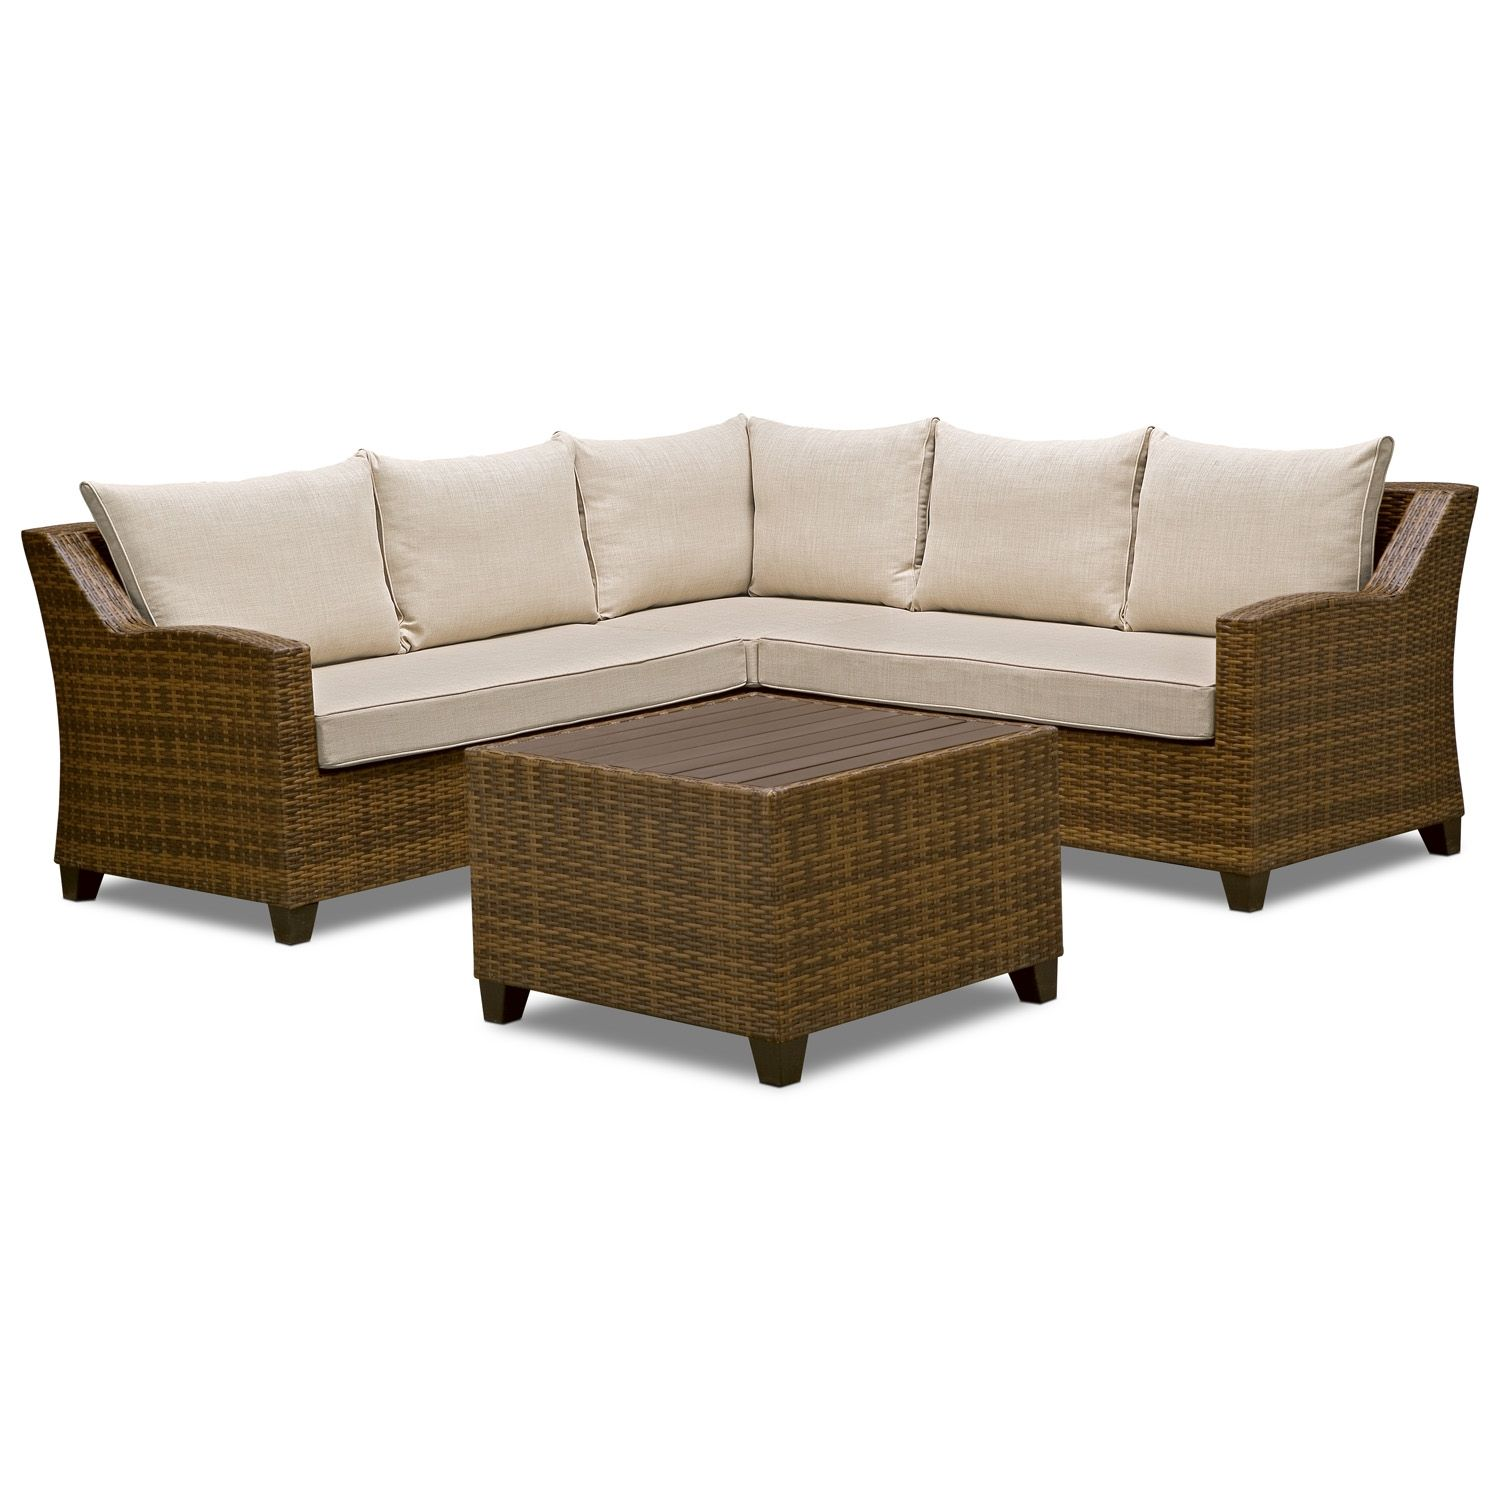 Woodfield Outdoor Furniture 3 Pc Patio Sectional And Cocktail Table